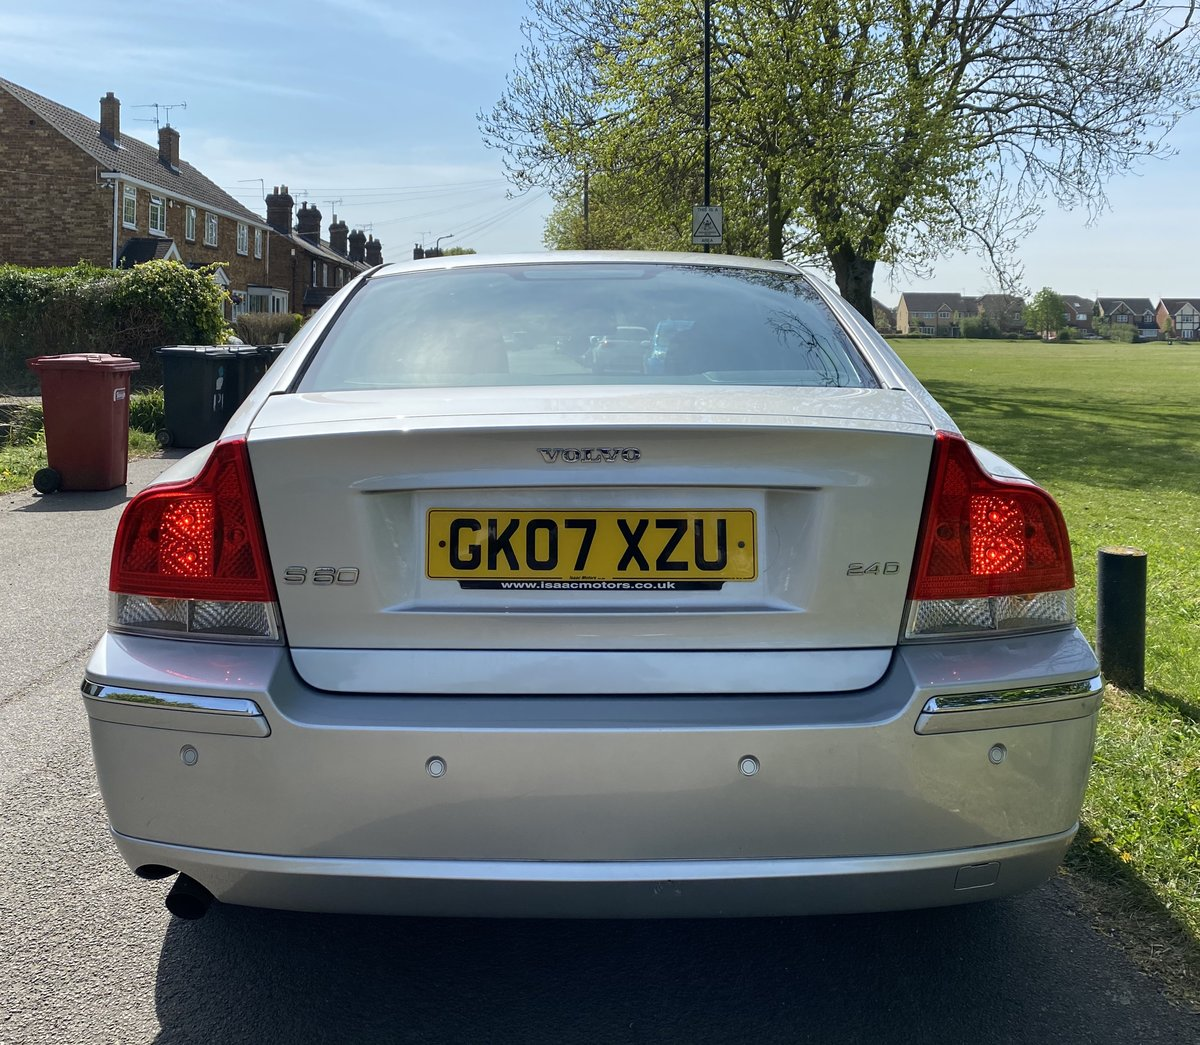 2007 Volvo S60 2.4D SE Auto 160BHP Excellent condition For Sale (picture 3 of 6)